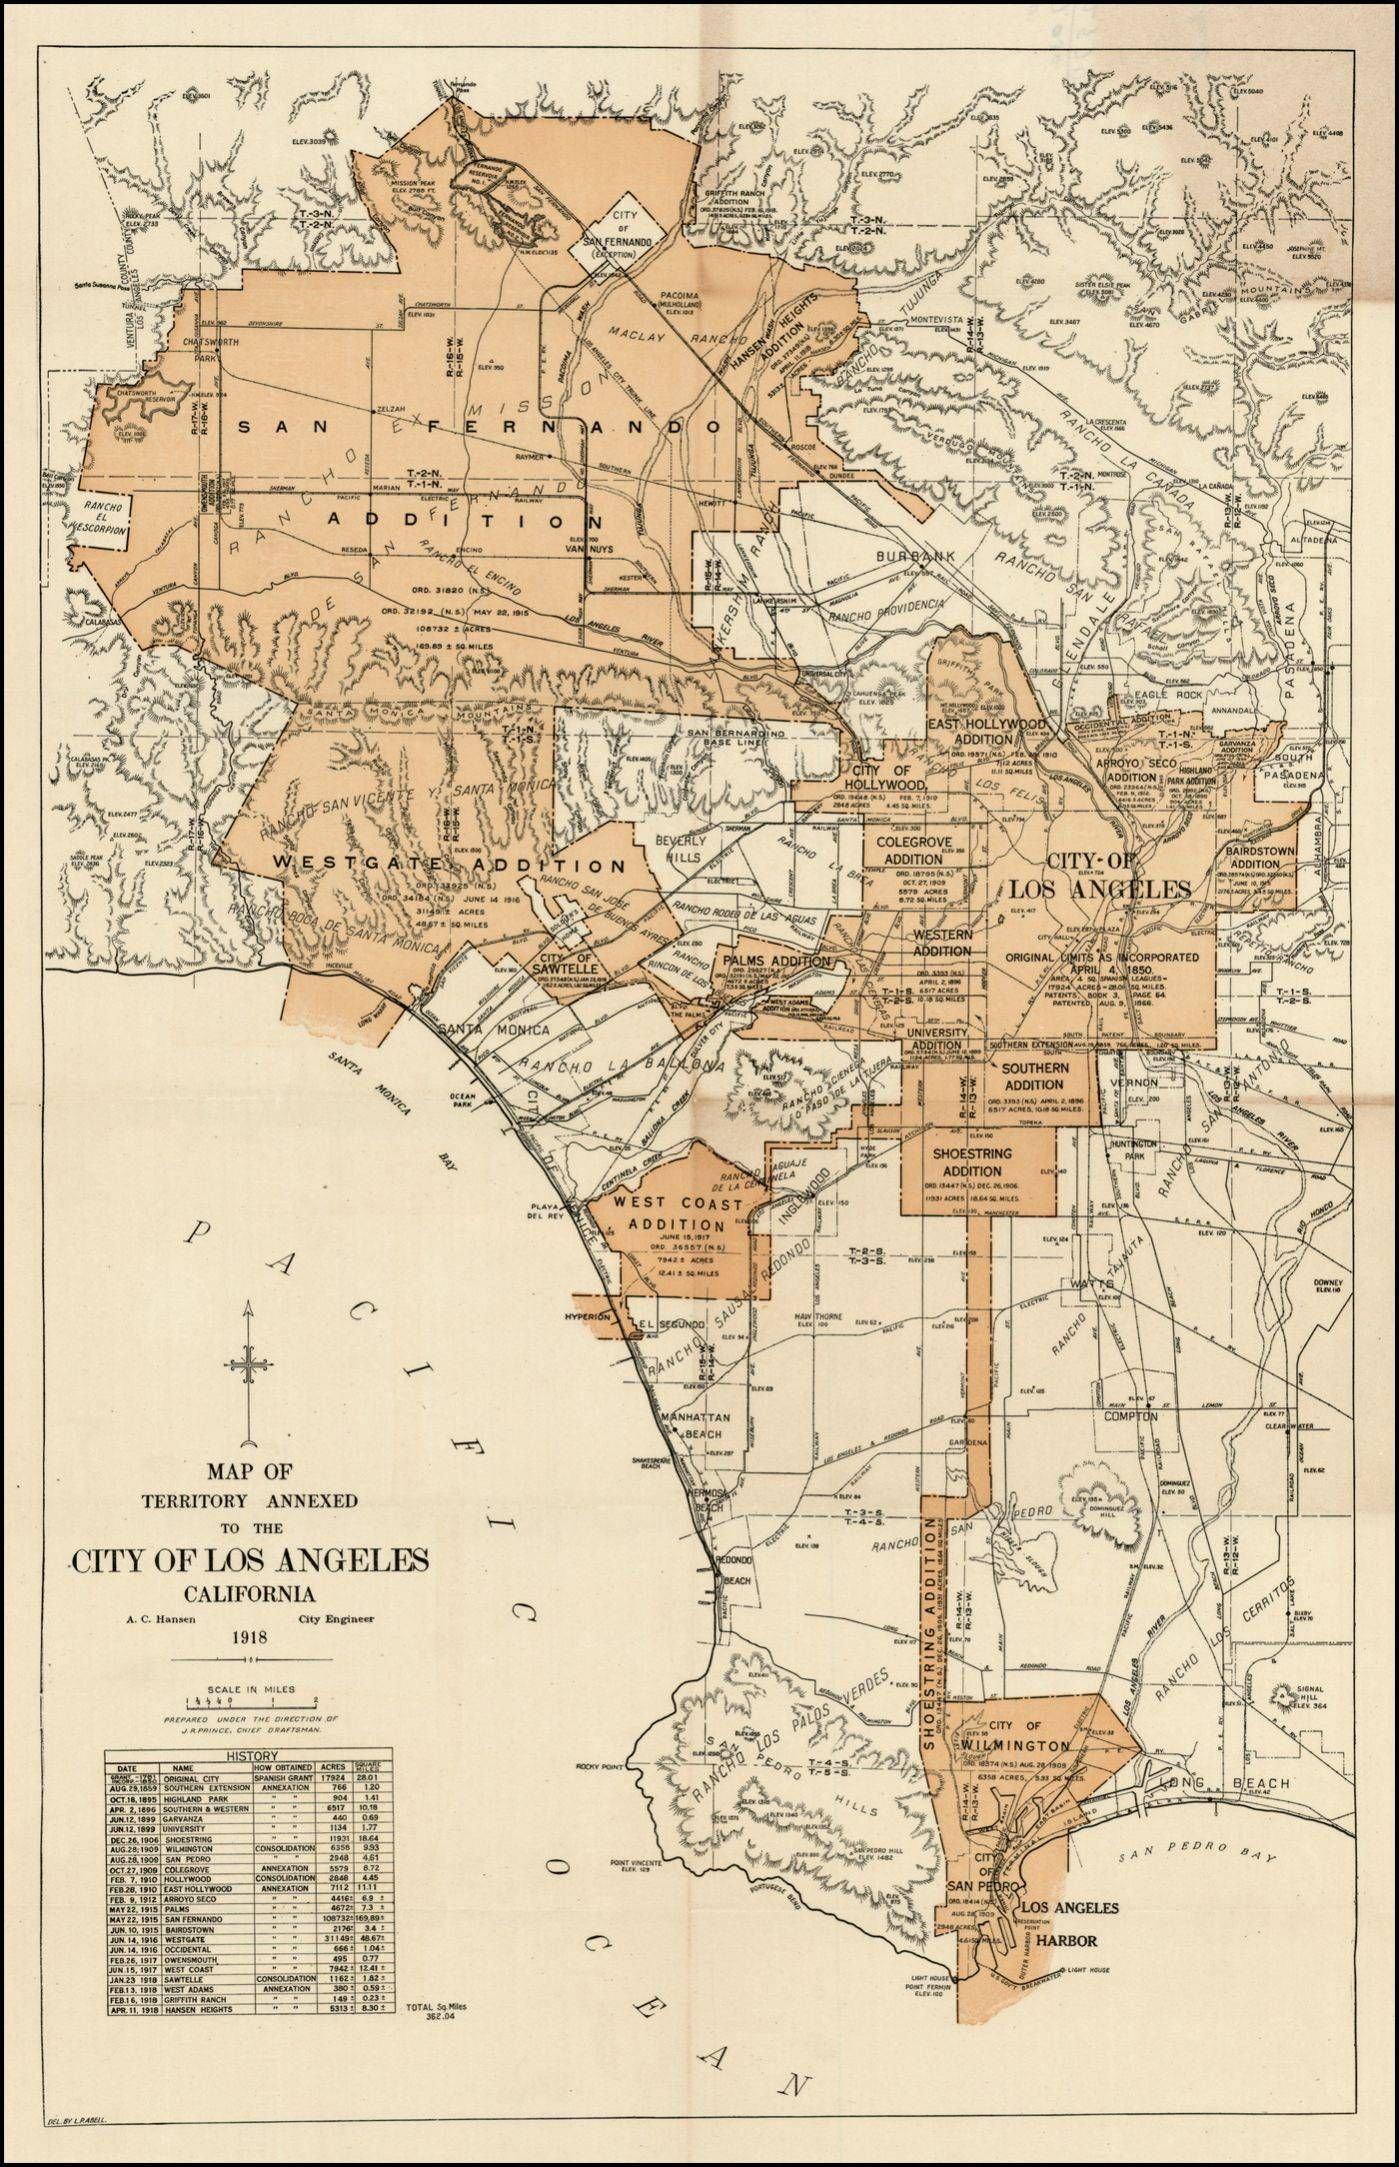 Expanding City Of Los Angeles, Circa 1918 | Maps | Pinterest | City - Old Maps Of Southern California